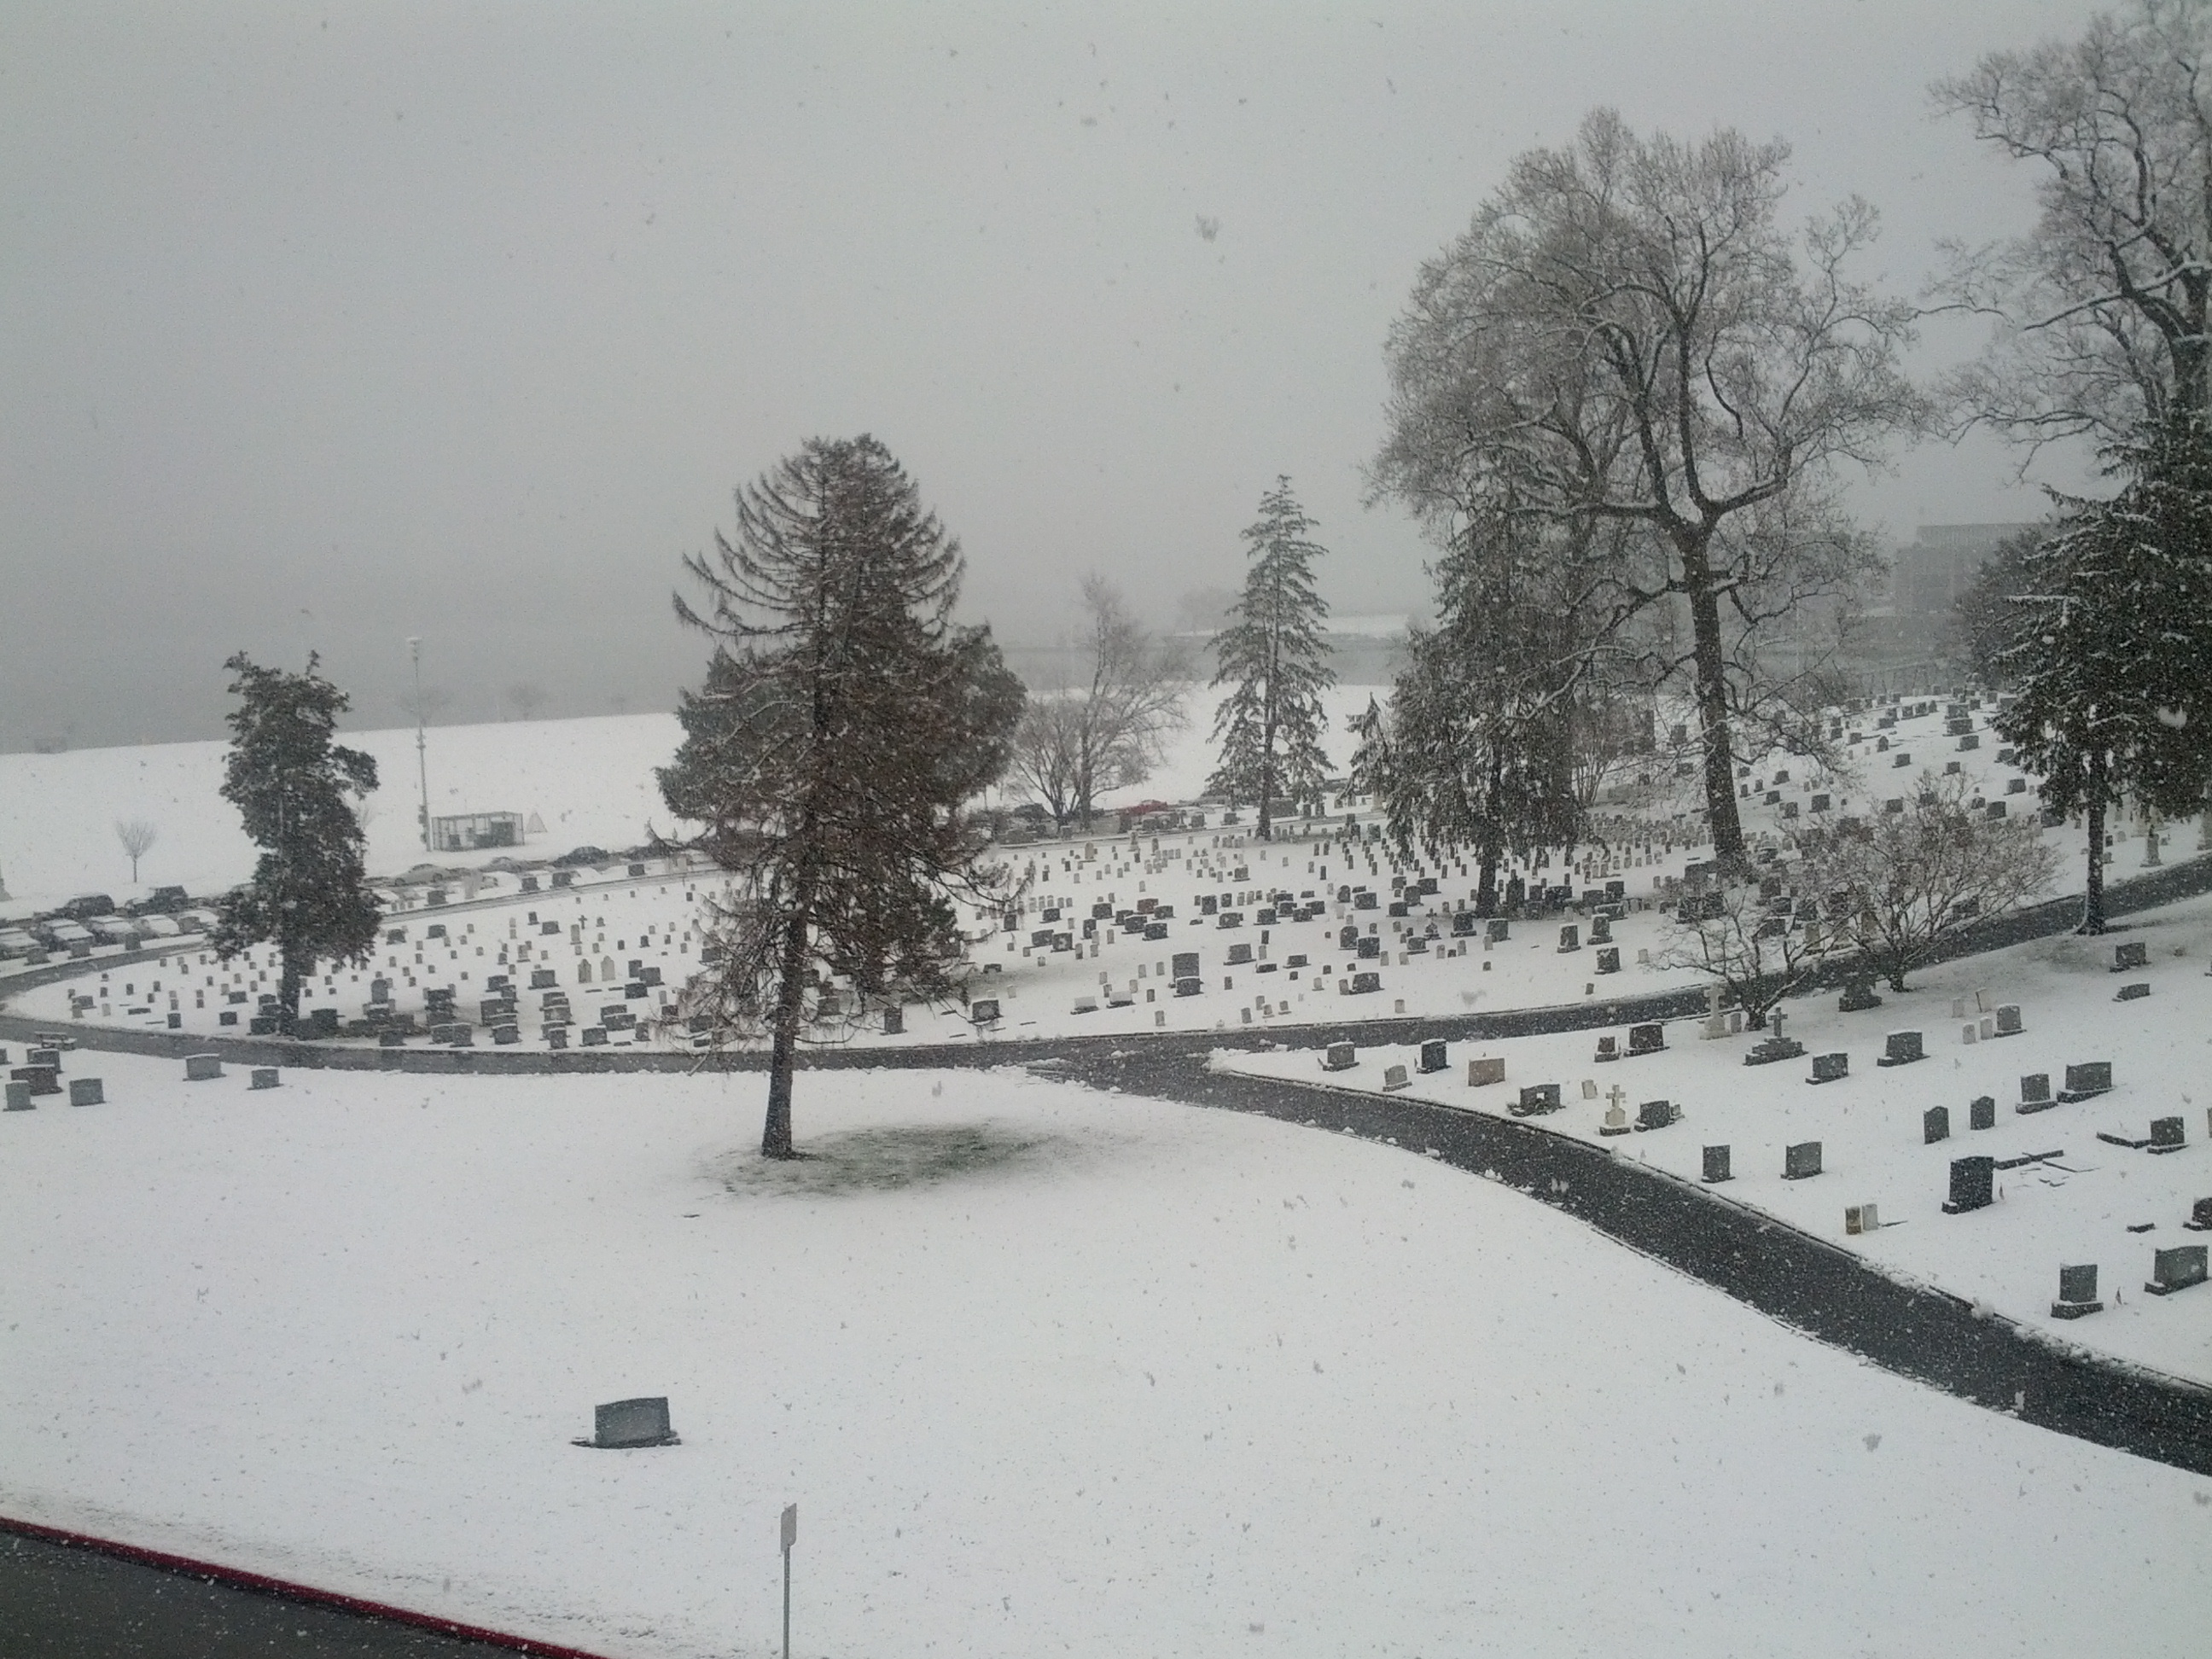 Snow at the U.S. Naval Academy